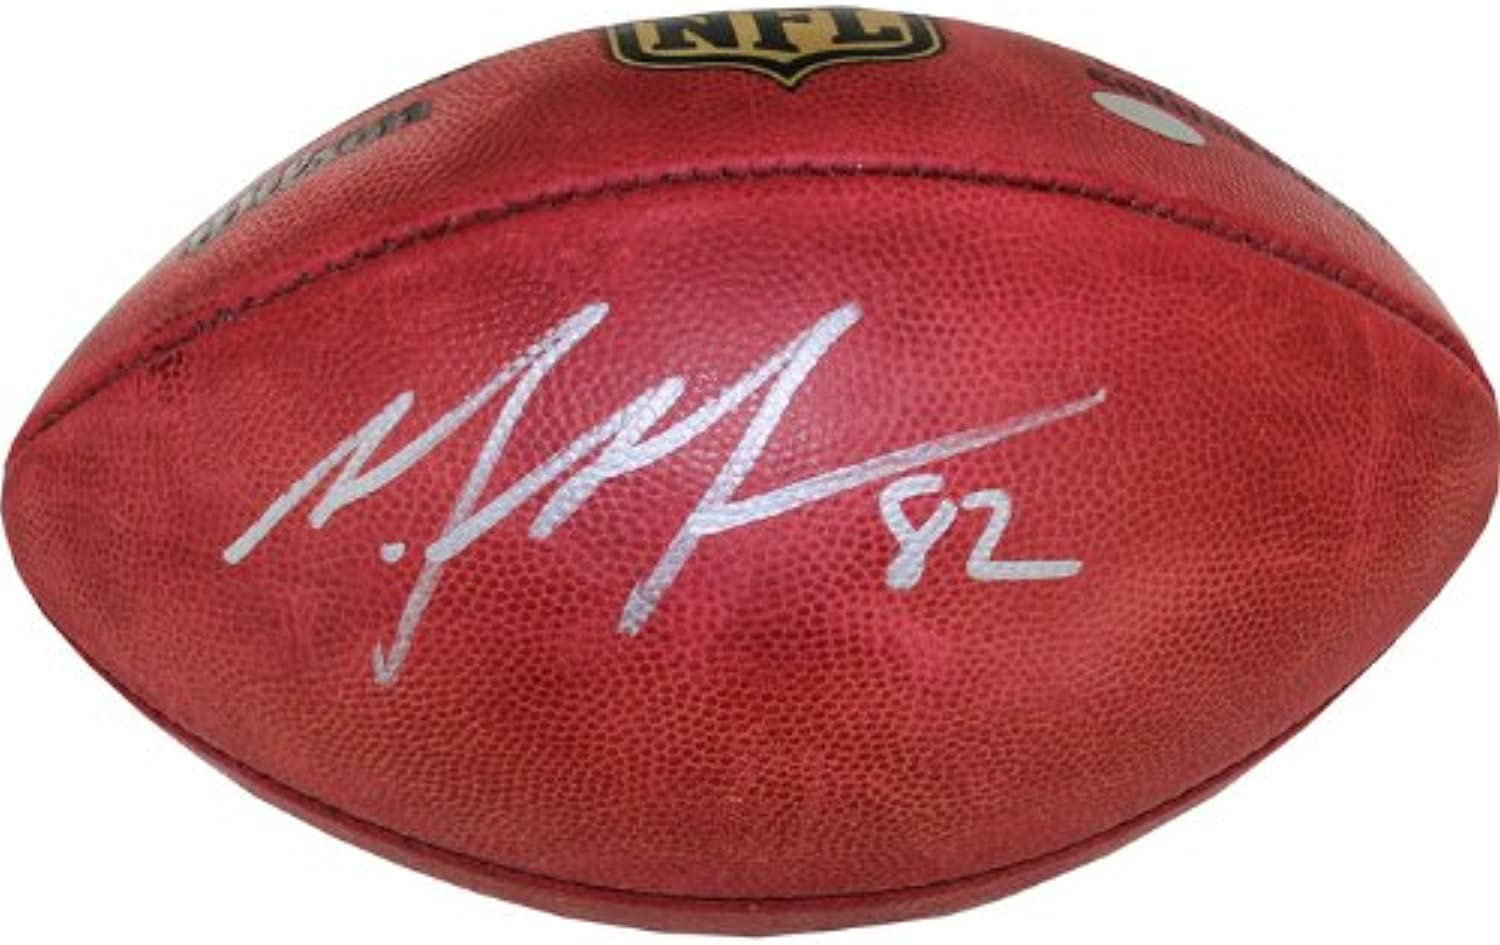 NFL New York Giants Mario Manningham Signed Duke Football